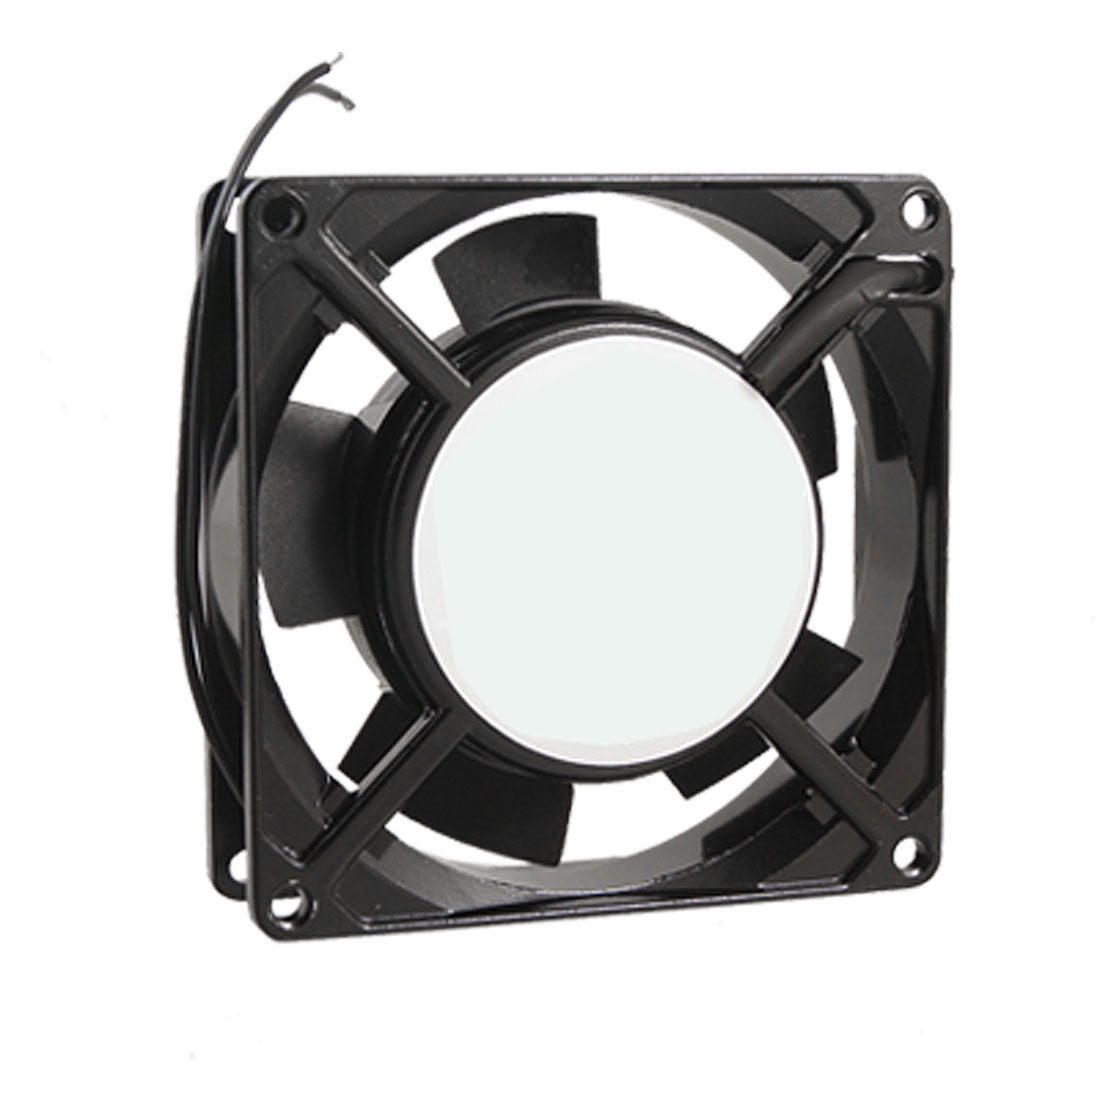 90 x 90 x 25mm AC 110-120V Heat Elimination Axial Cooler Fan